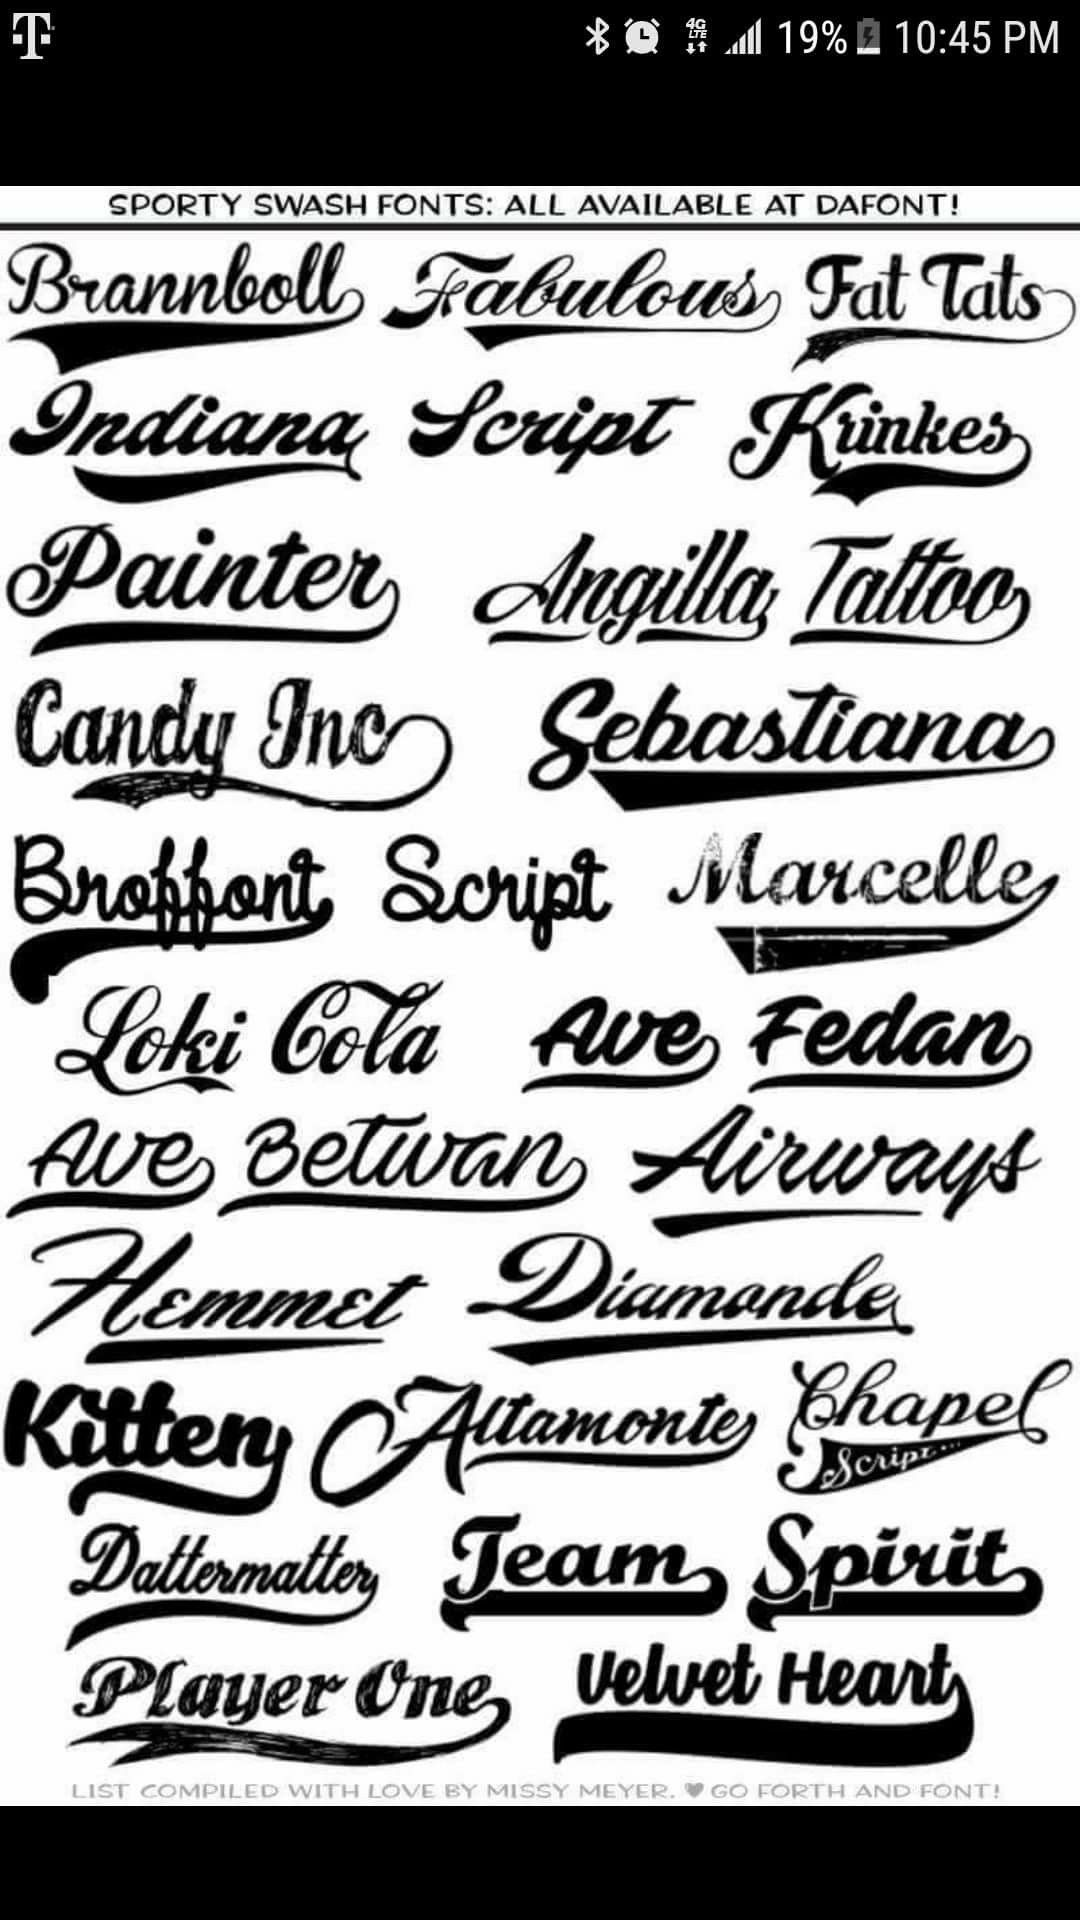 Sporty Swash Fonts At Dafont Sports Fonts Silhouette Fonts Free Sports Fonts